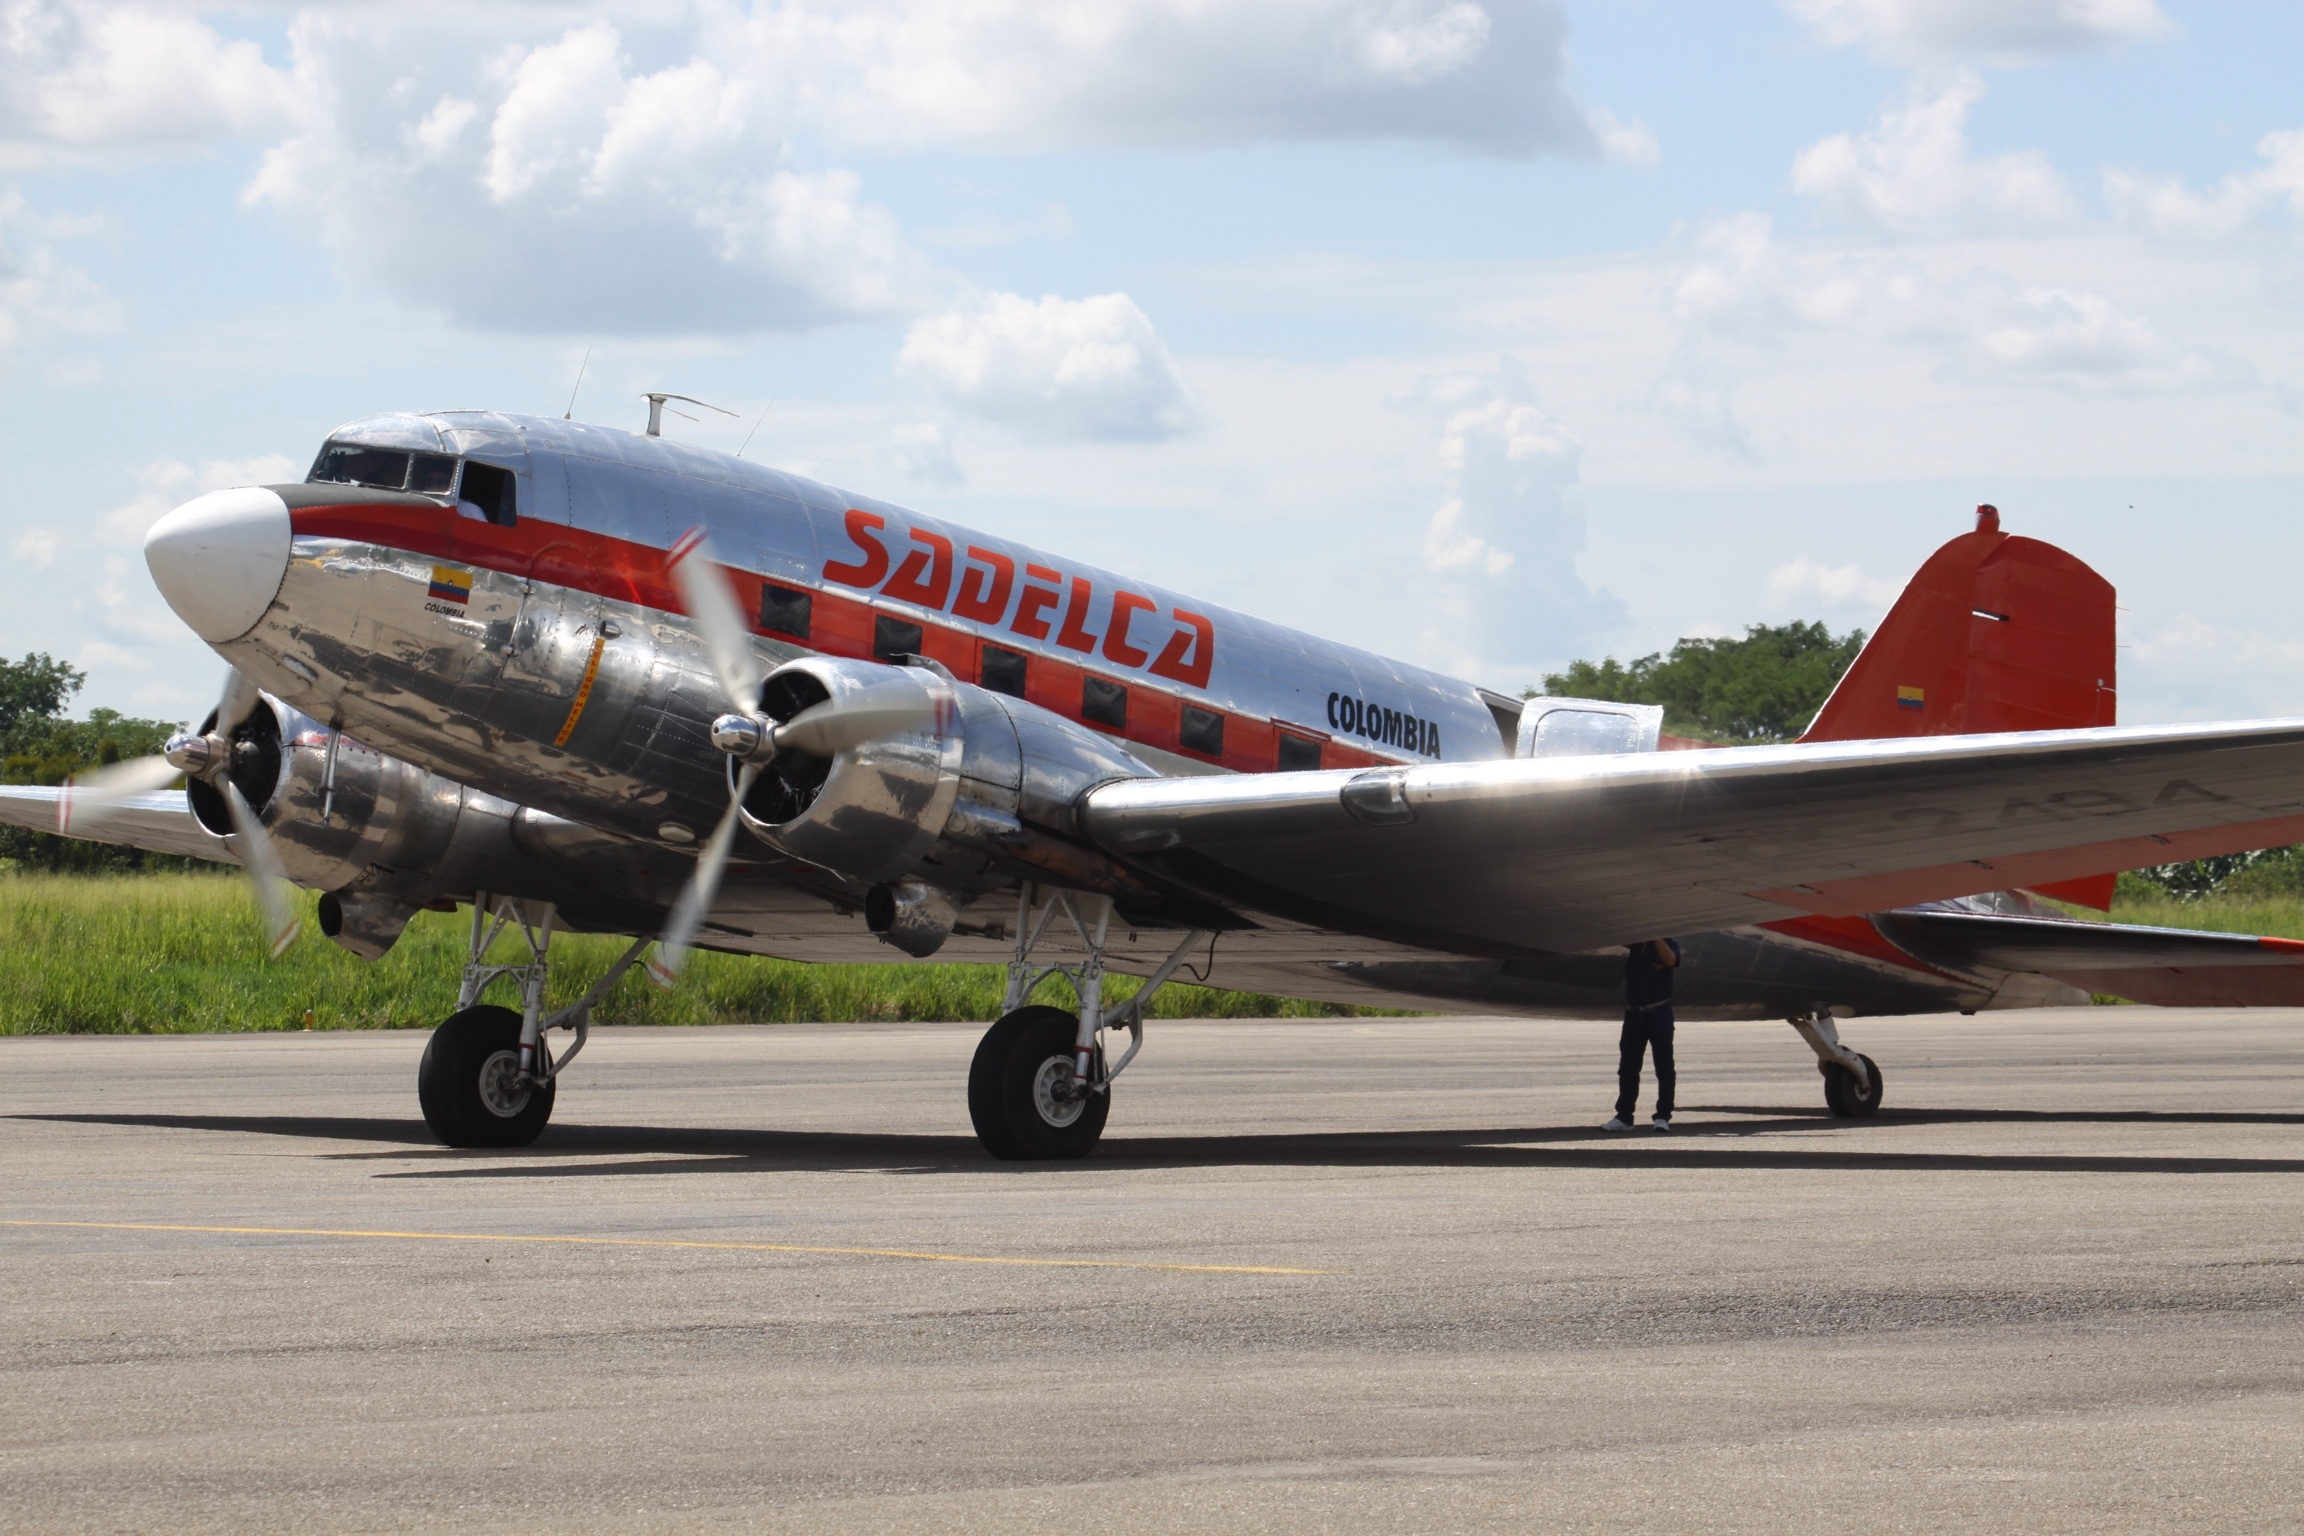 2019 Colombia DC-3 crash - Wikipedia